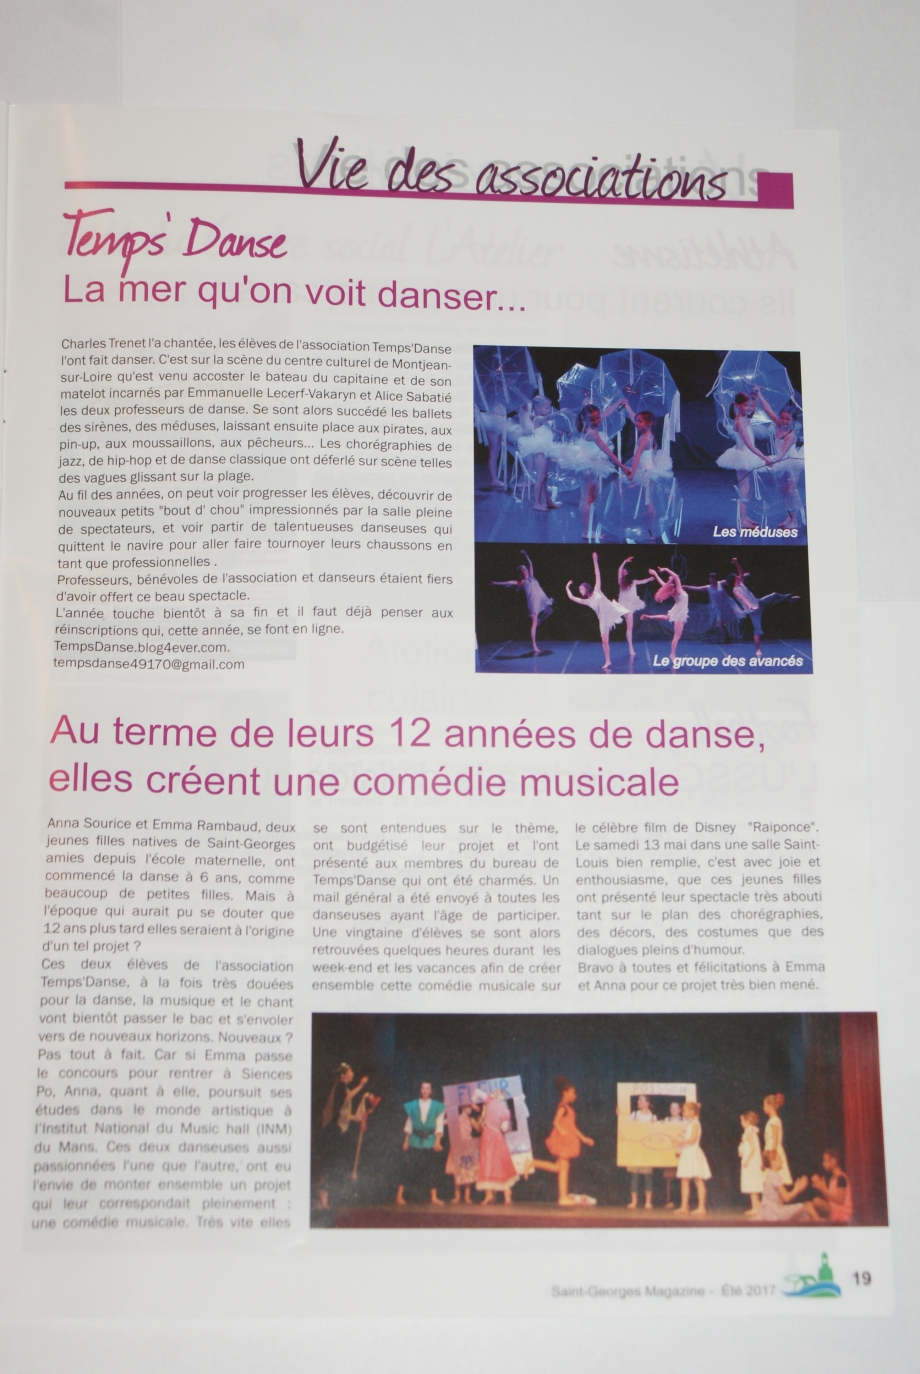 article ST georges mag juillet 2017.JPG